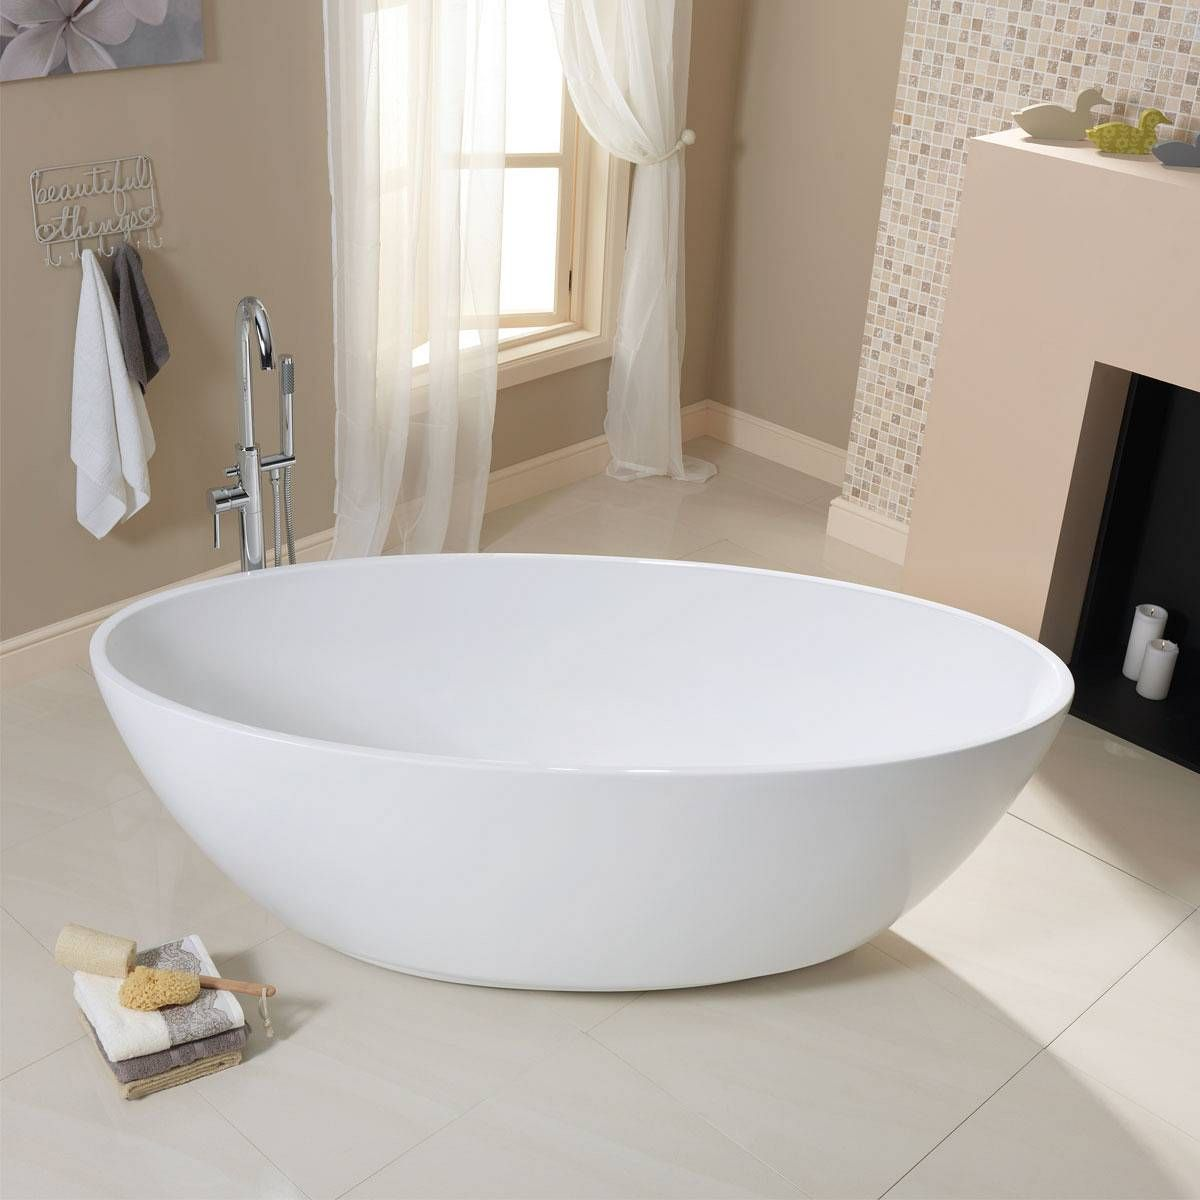 Bathroom Lights Victoria Plumb harrison roll top bath - looks like an egg! £399 from victoria